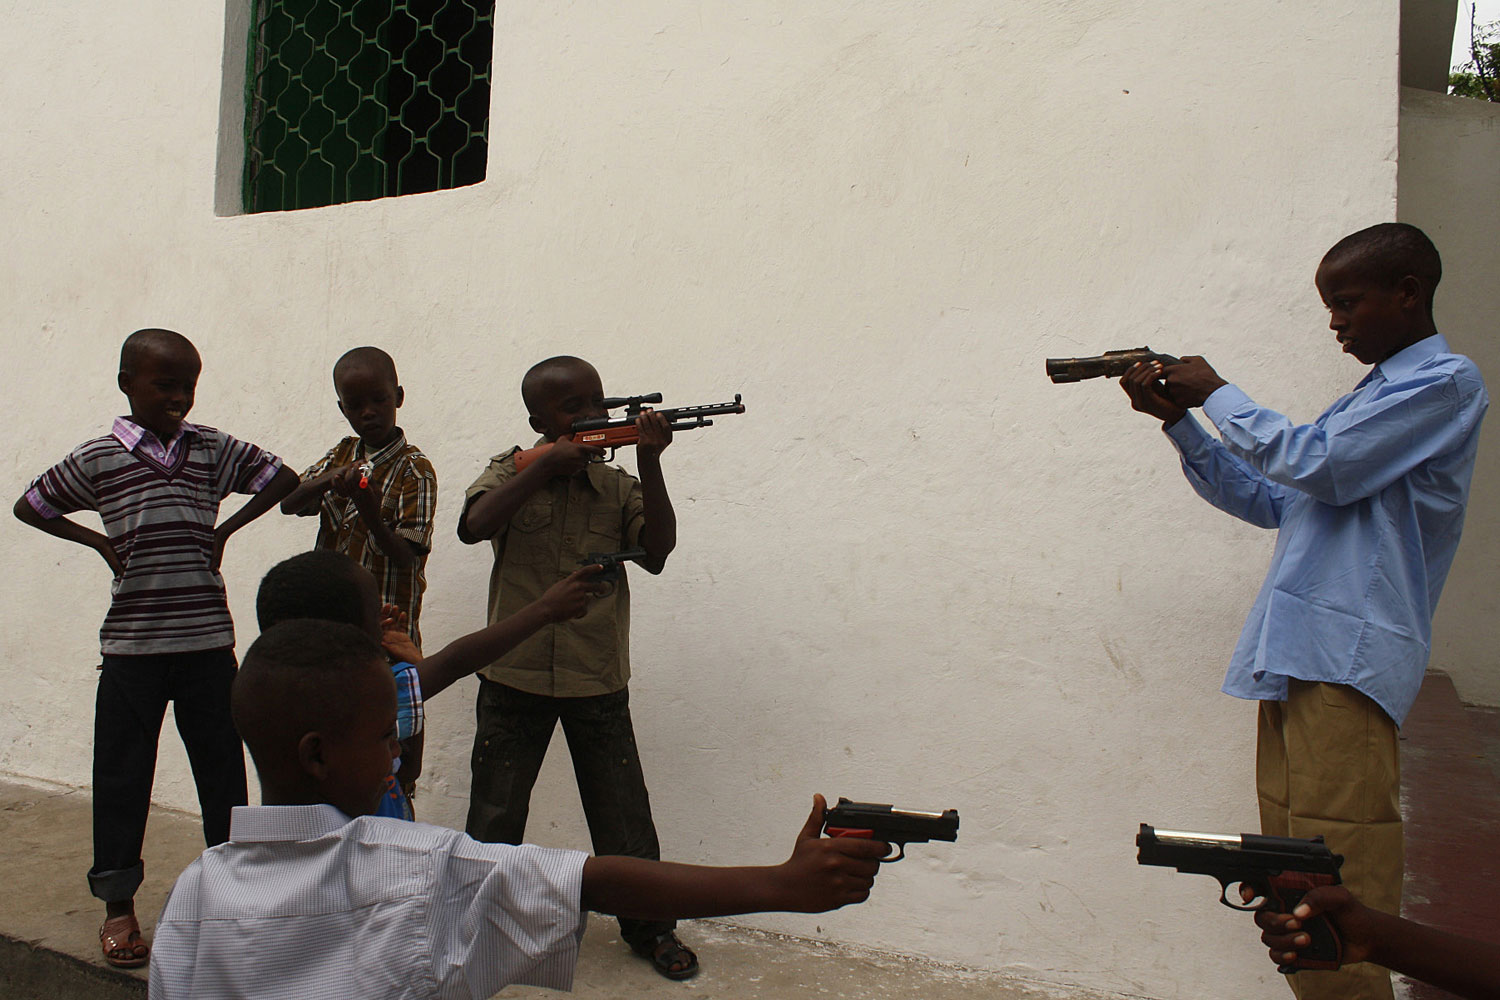 August 30, 2011. Somali children play with toy guns and weapons in Mogadishu at the start of the three-day Eid al-Fitr feast. Eid-al-Fitr celebrations mark the end of the fasting Muslim month of Ramadan